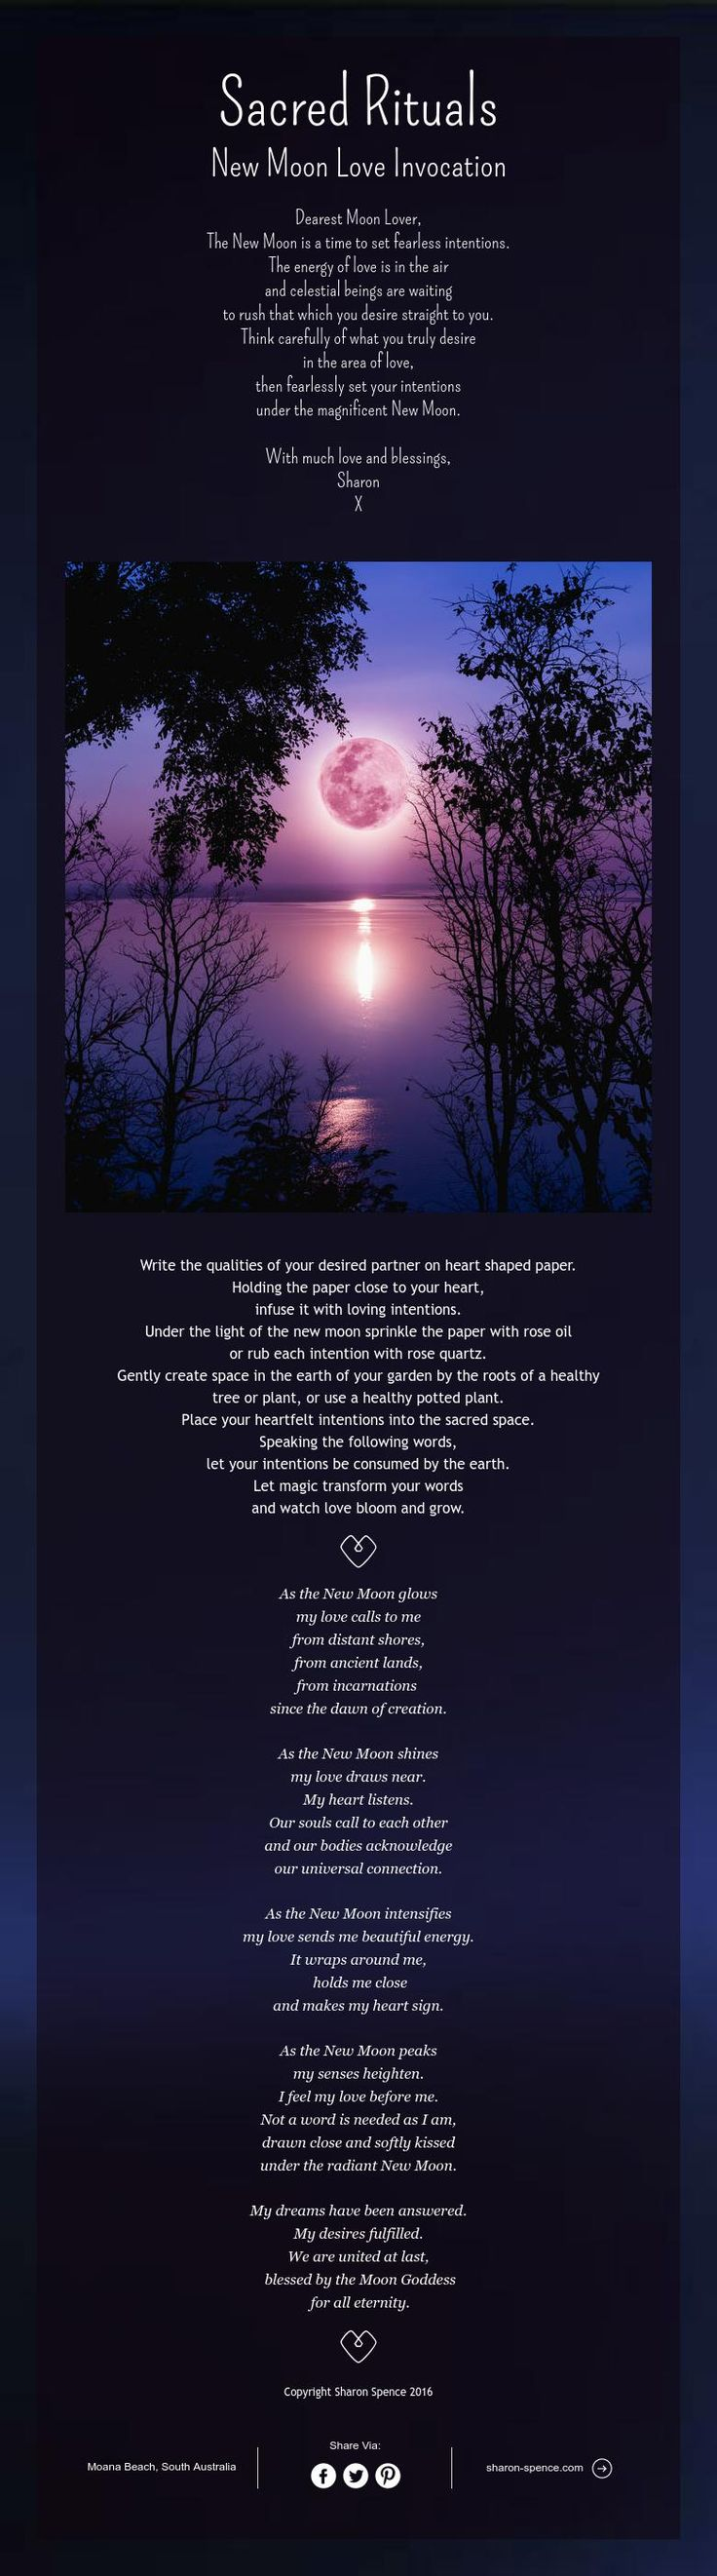 Sacred Rituals New Moon Love Invocation